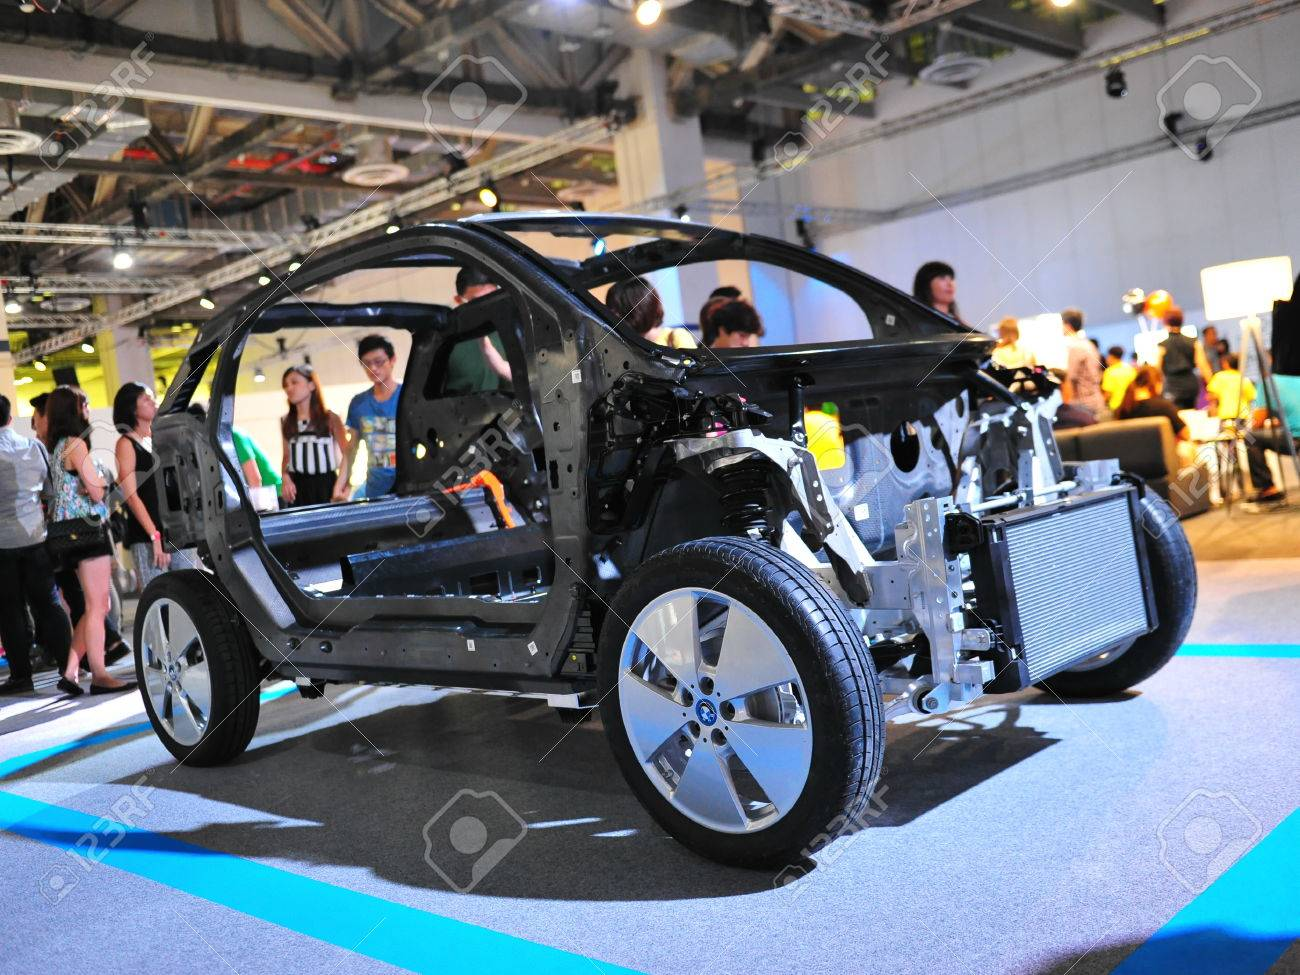 Singapore August 2 Chassis Of Bmw I3 Urban Electric Car On